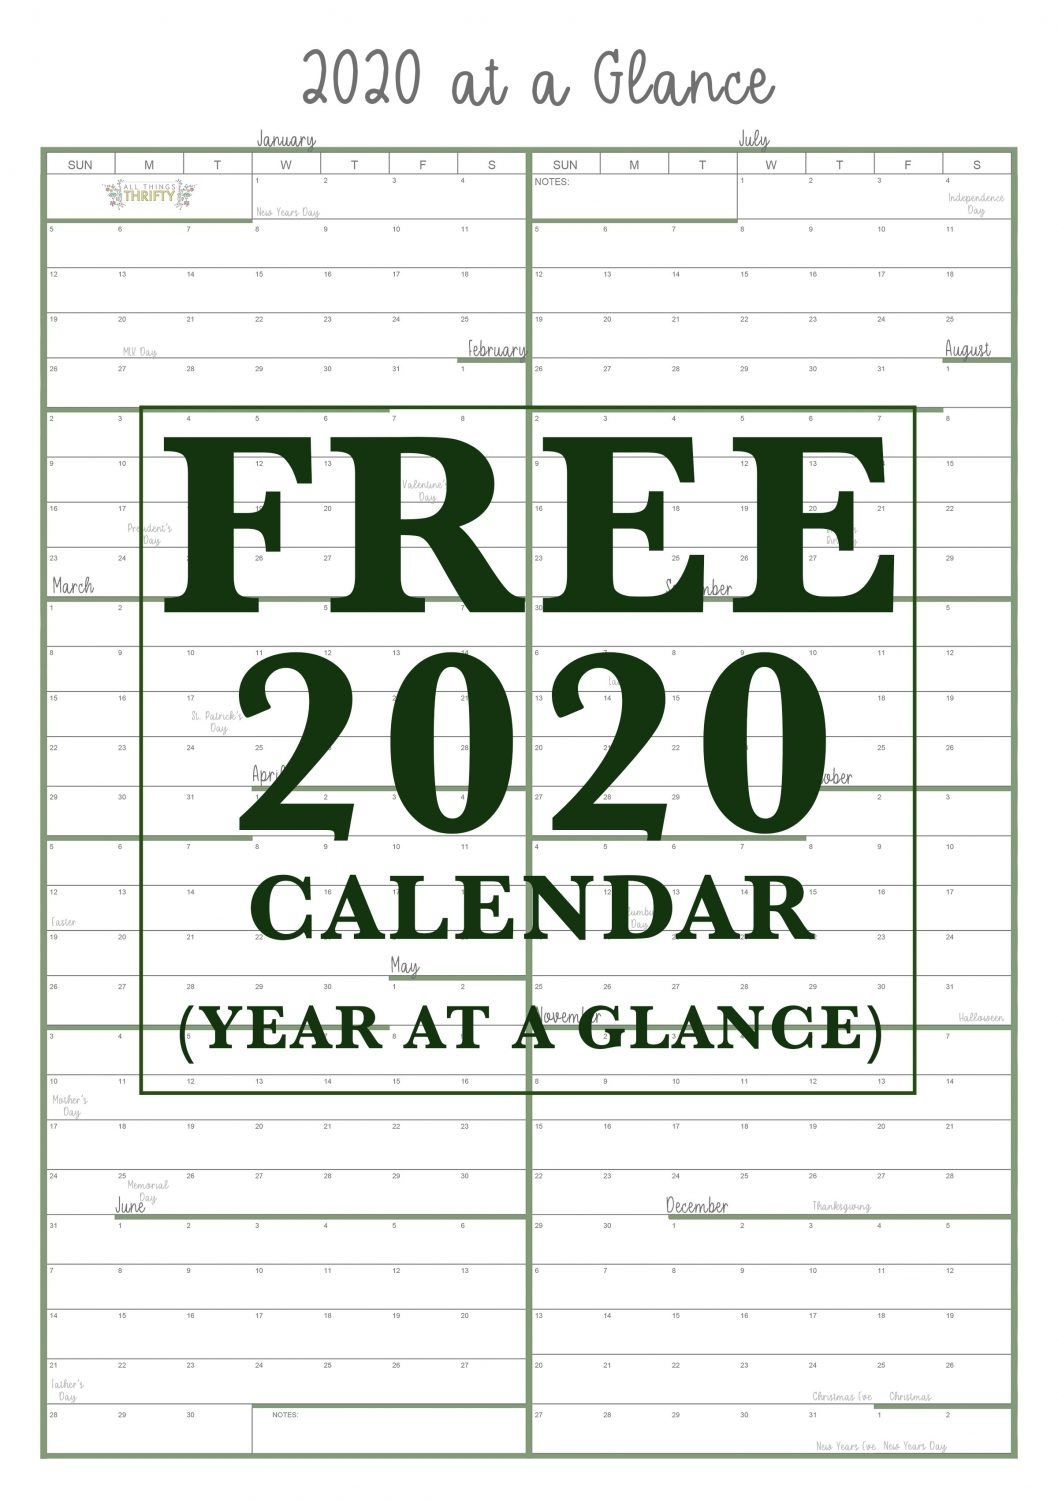 Year At A Glance Free Printable Calendar | All Things Thrifty intended for Printable Year At A Glance Calendar